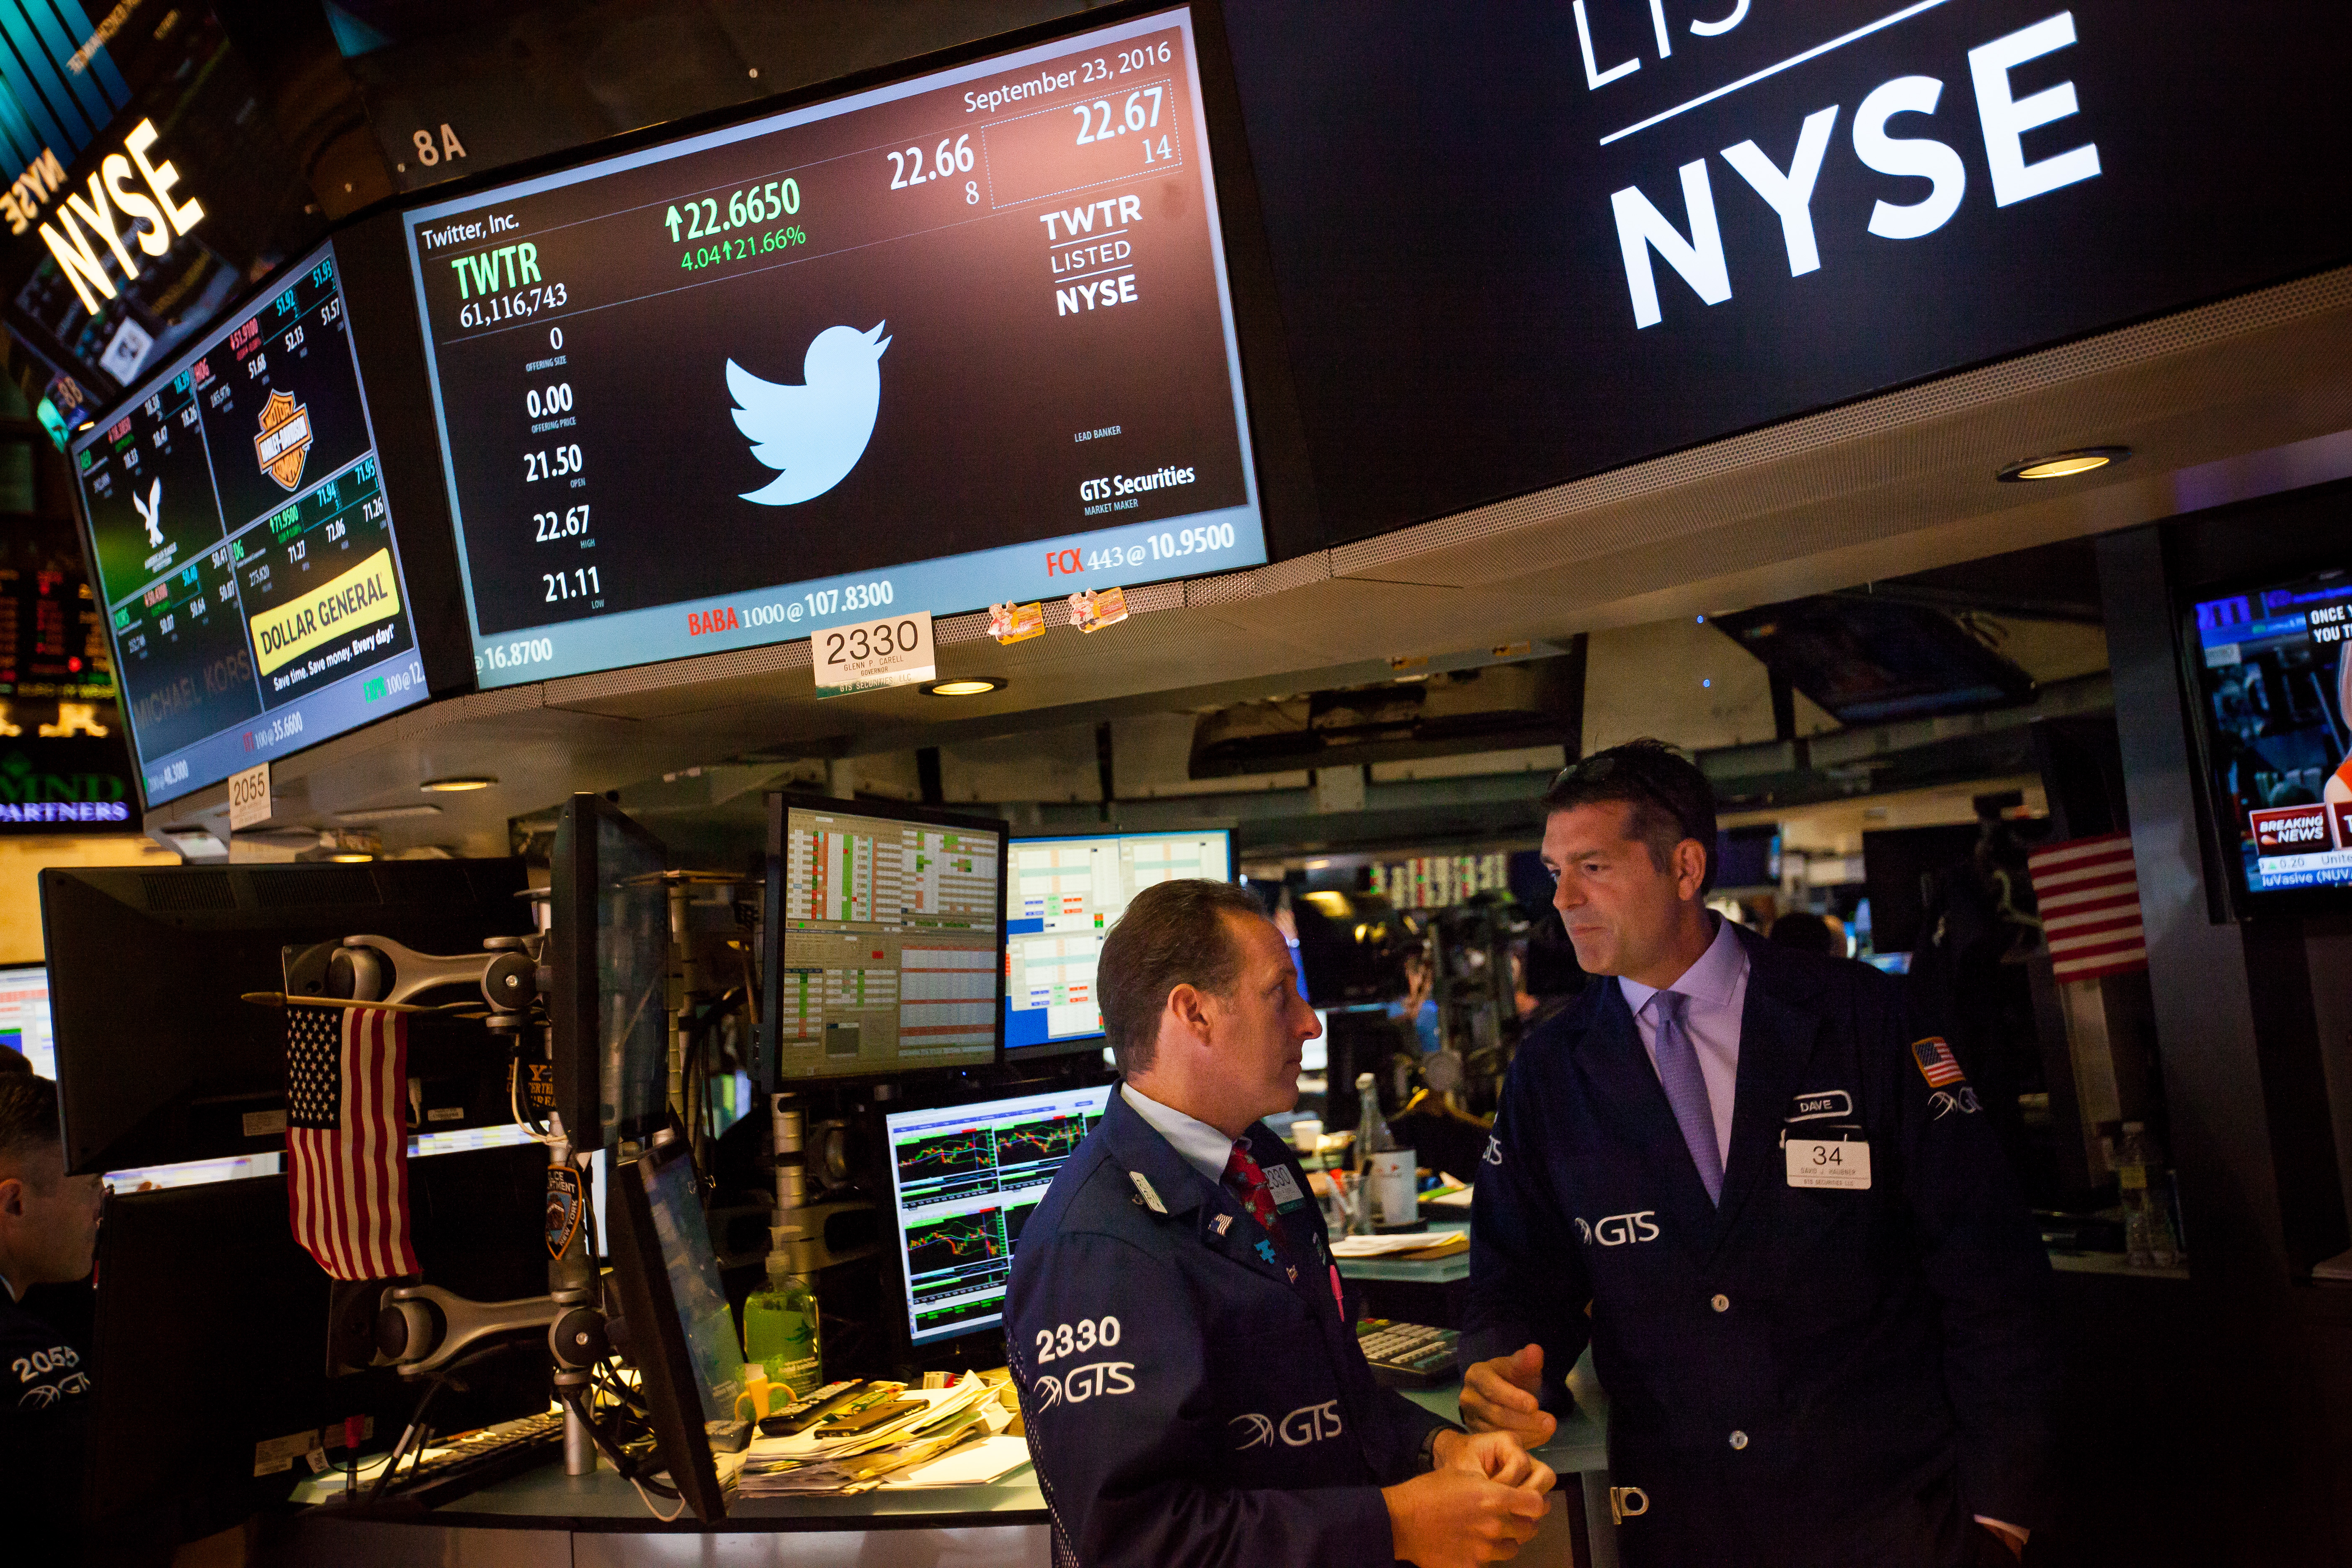 Stock traders work beneath a monitor displaying Twitter Inc. signage on the floor of the New York Stock Exchange (NYSE) in New York, U.S.